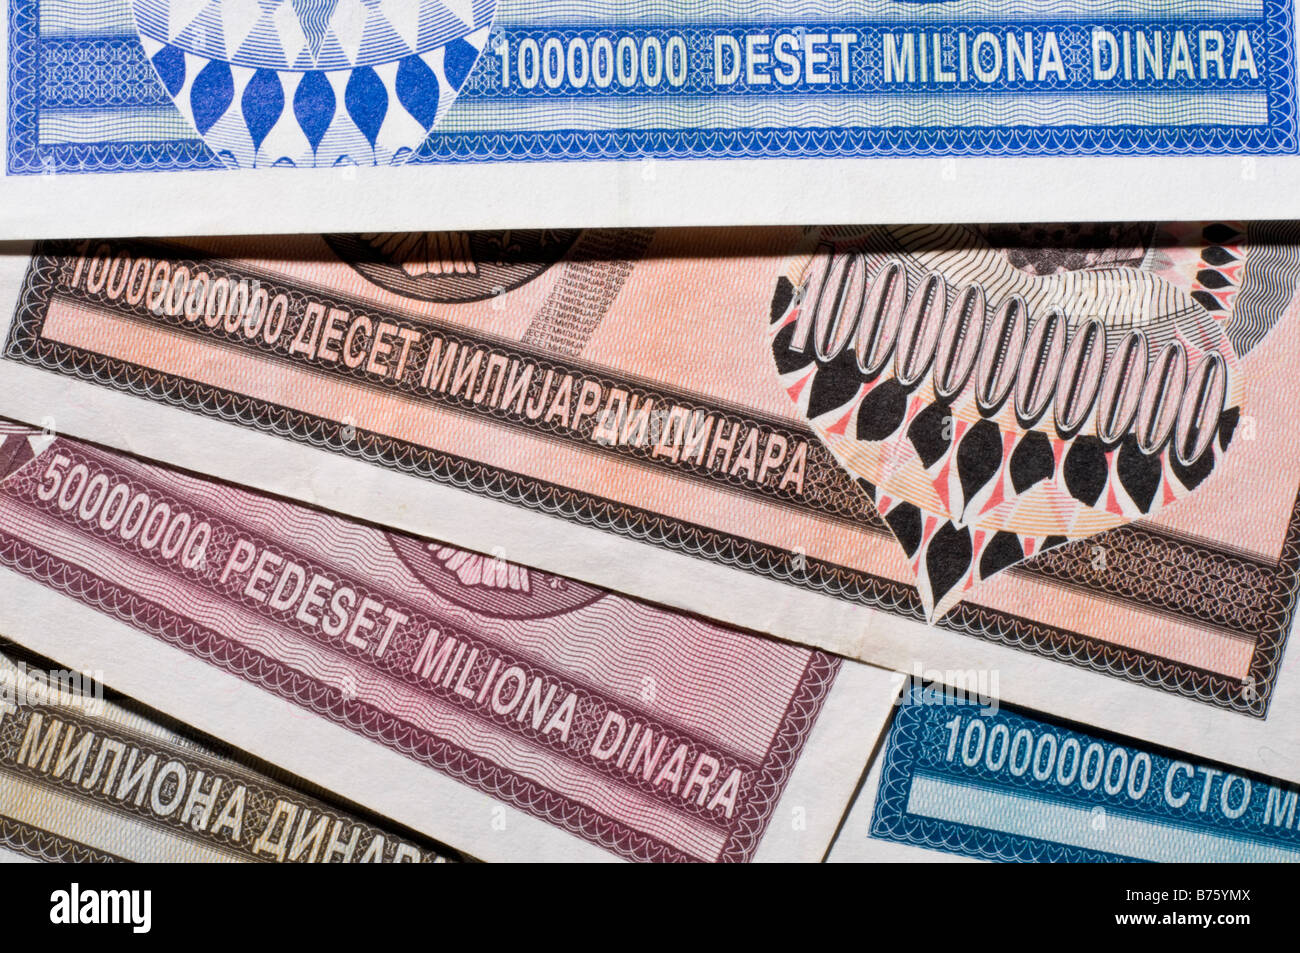 Banknotes From Krajina Serbia During Period Of Hyperinflation 1993 Ten Million To Ten Billion Dinar Notes